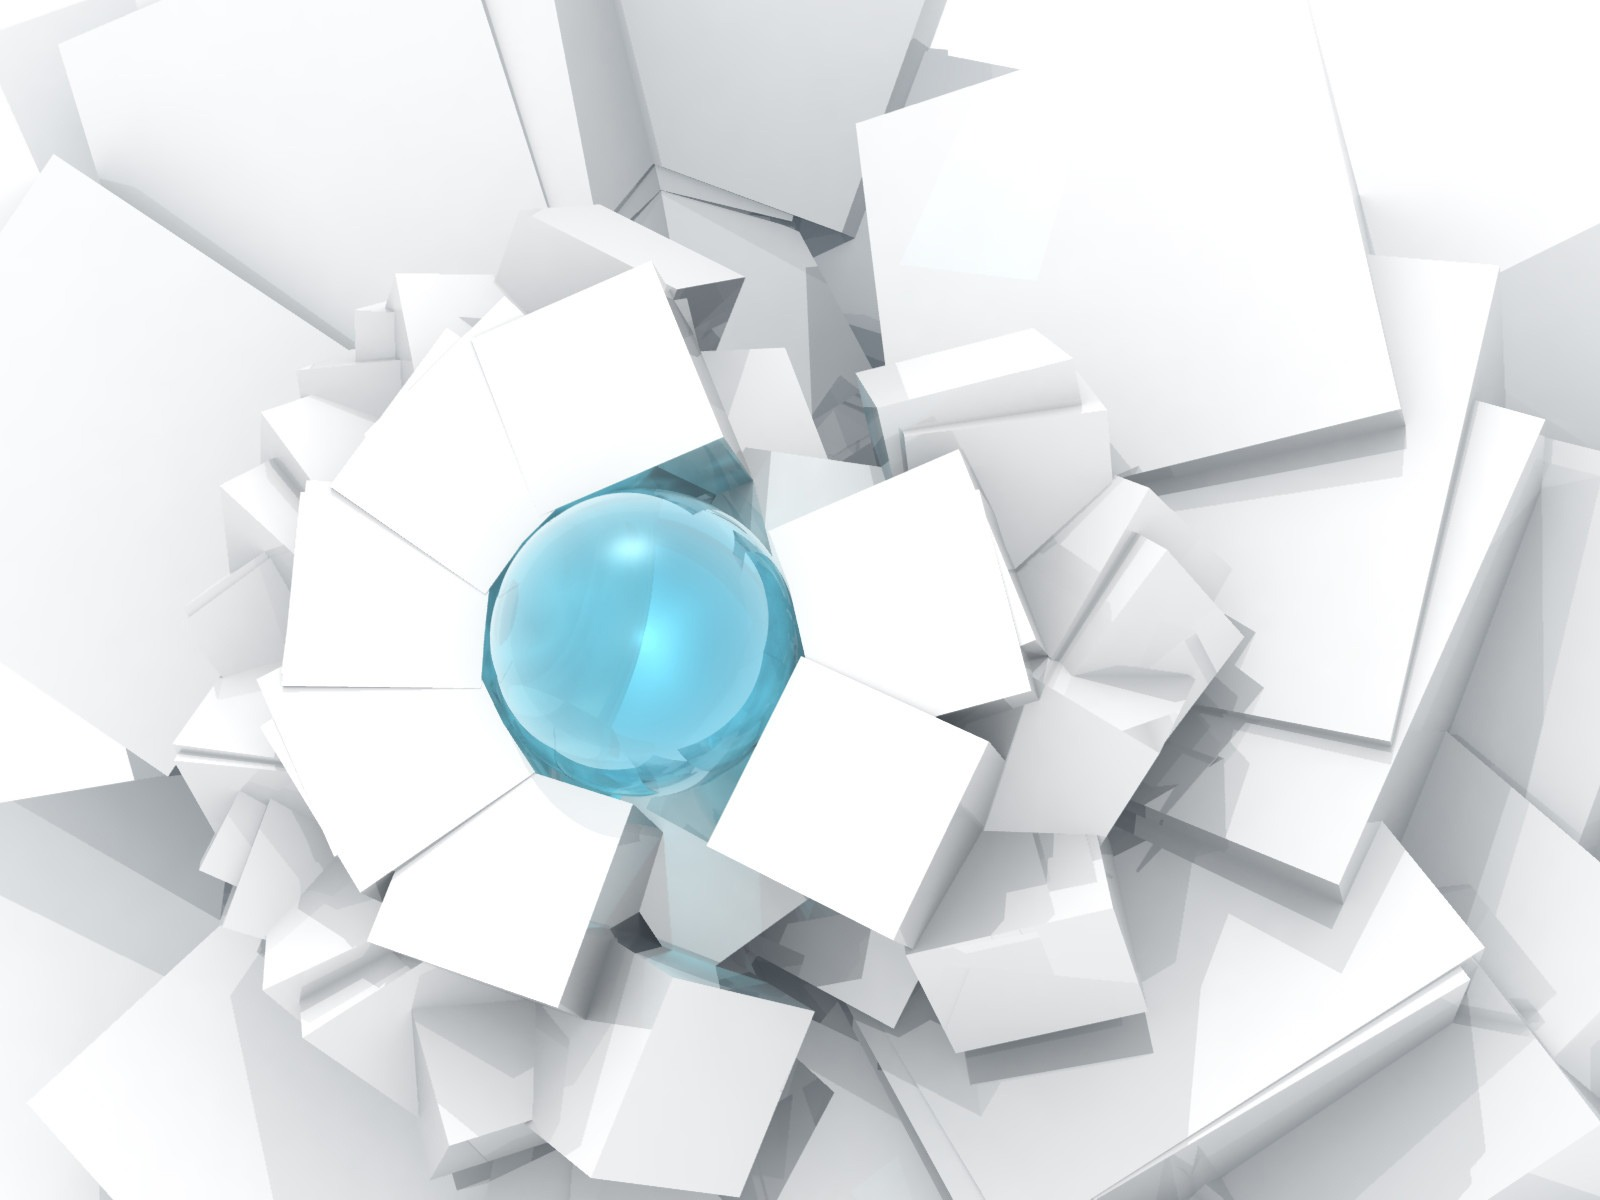 Abstract 3d Wallpaper White